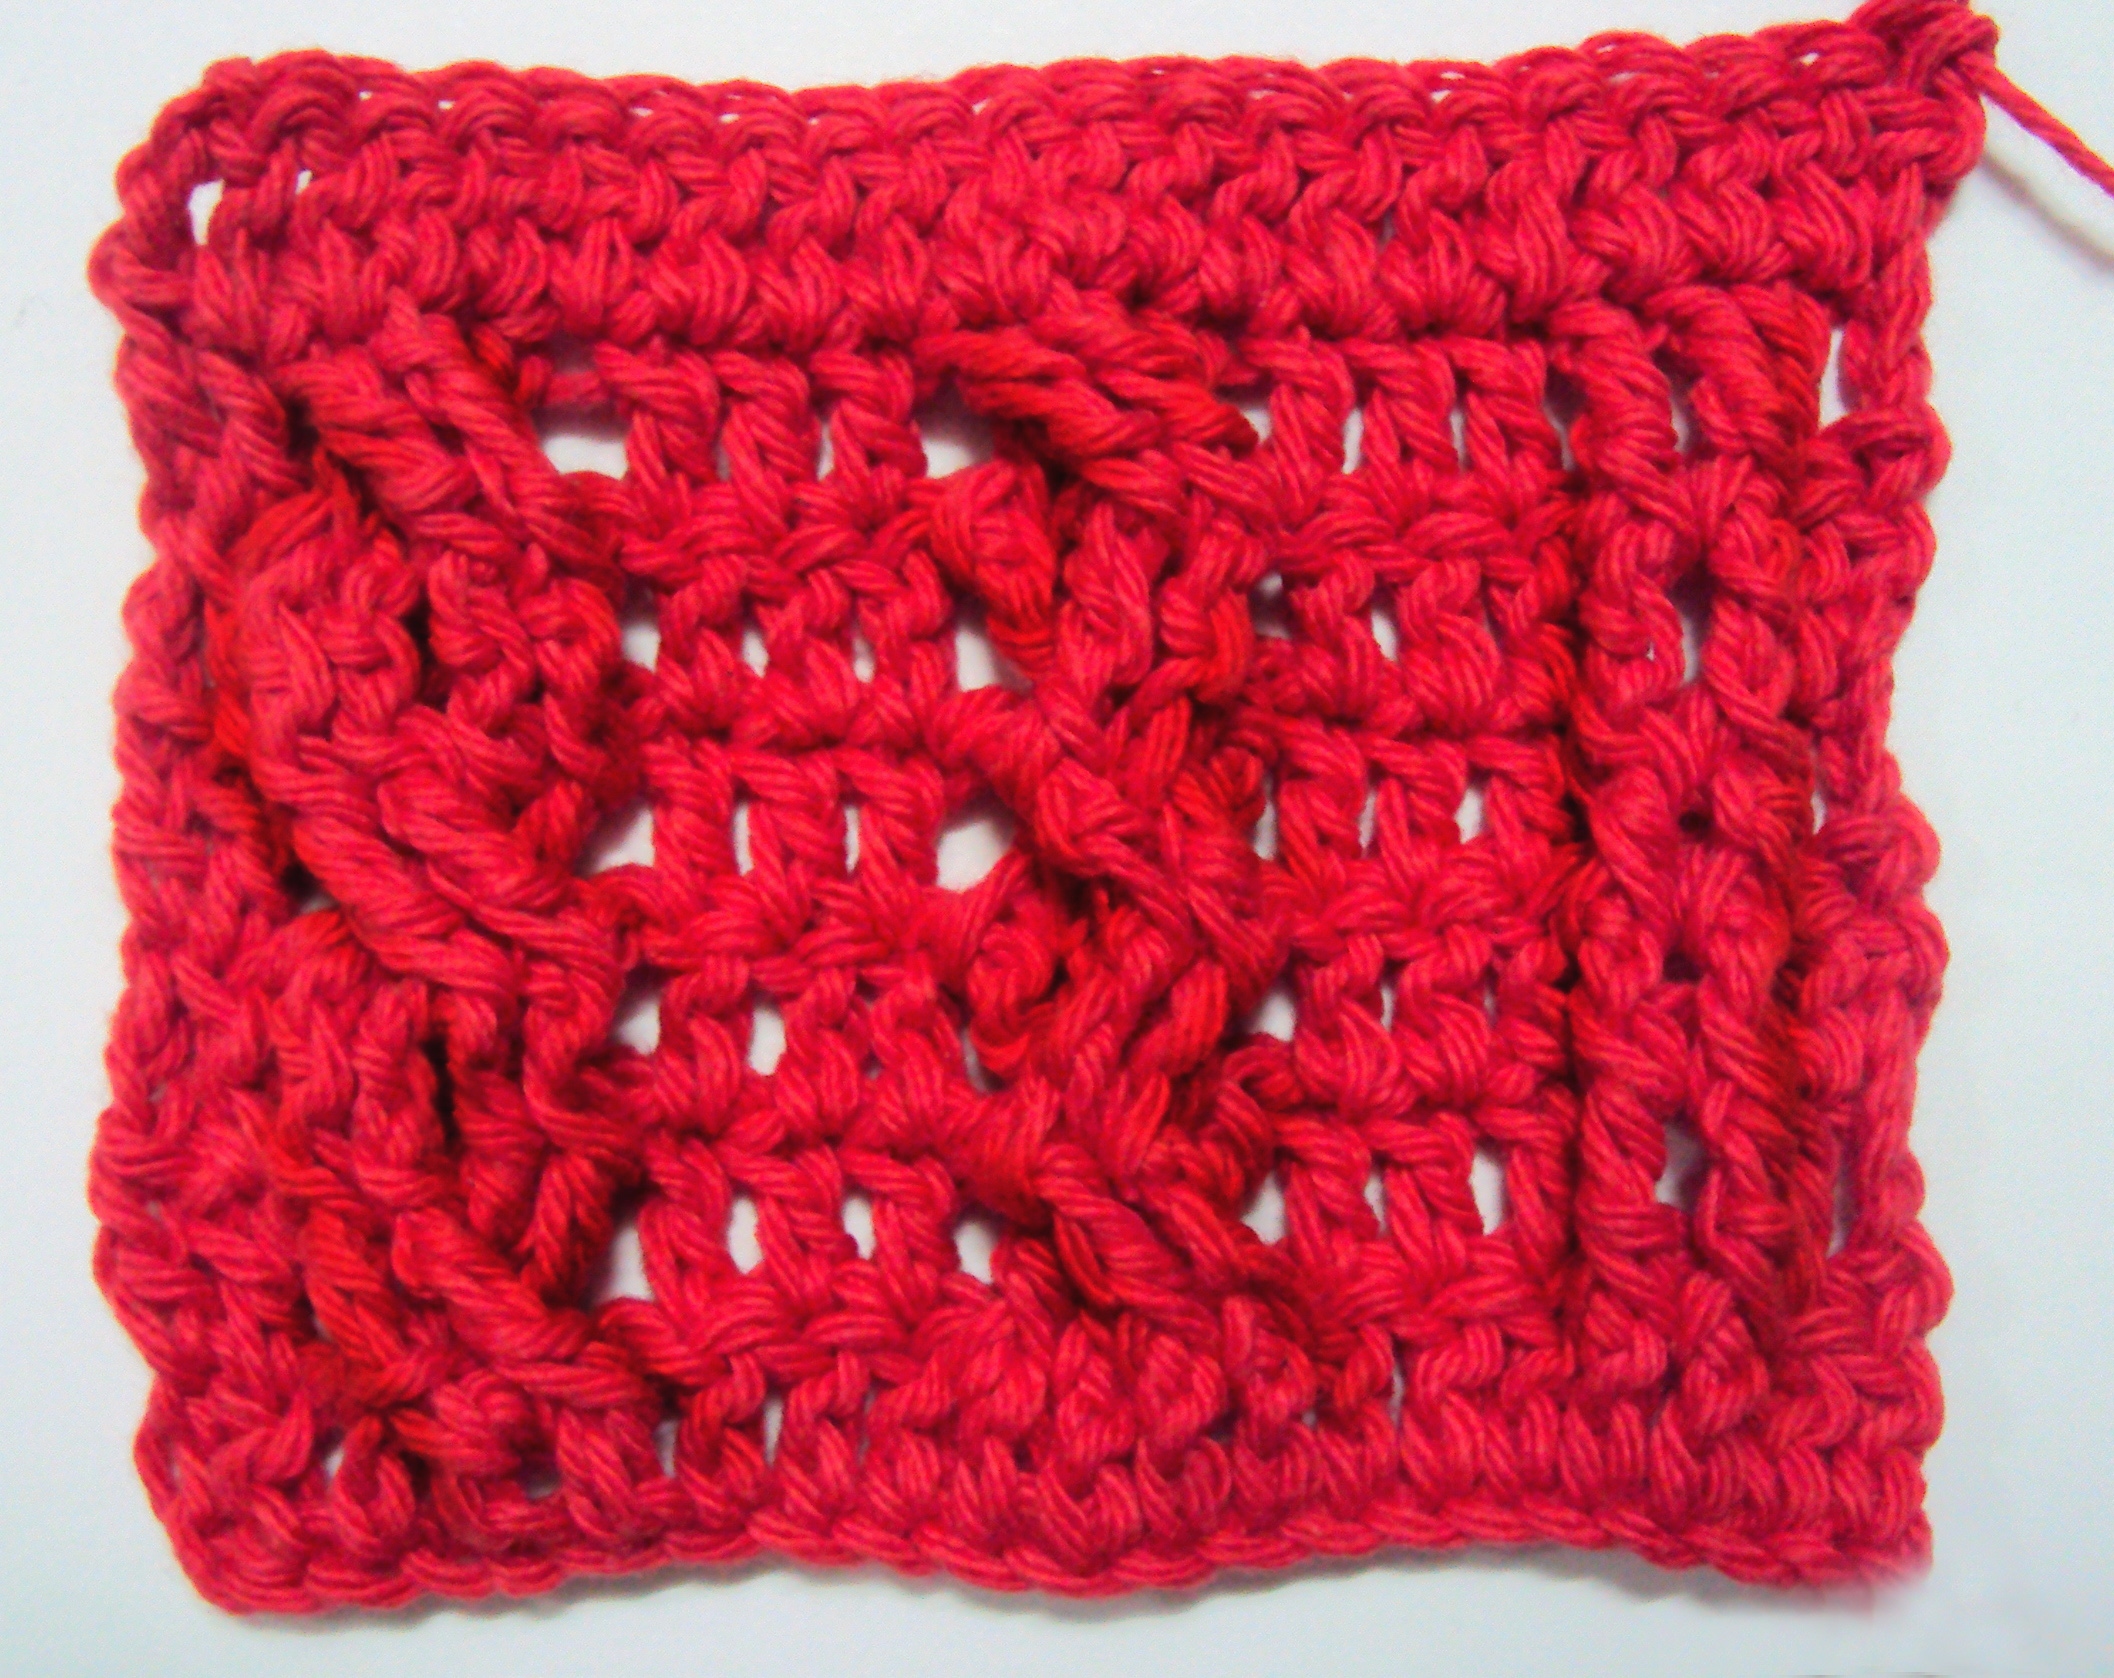 Crocheting Directions : How to Crochet: Cable Stitches - Crochet Patterns, Tutorials and News ...